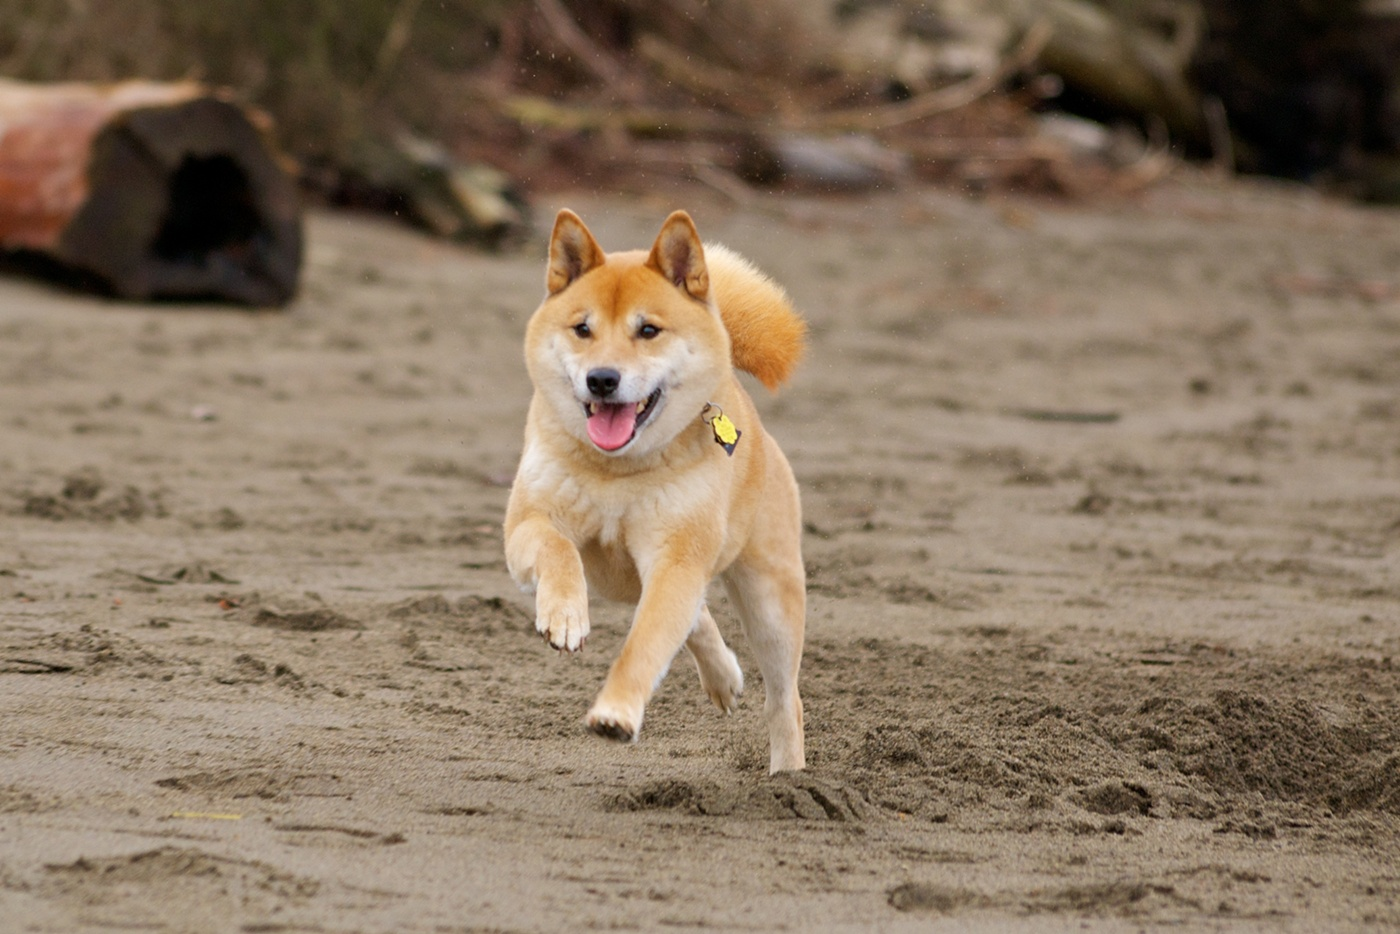 Running Shiba Inu dog  wallpaper